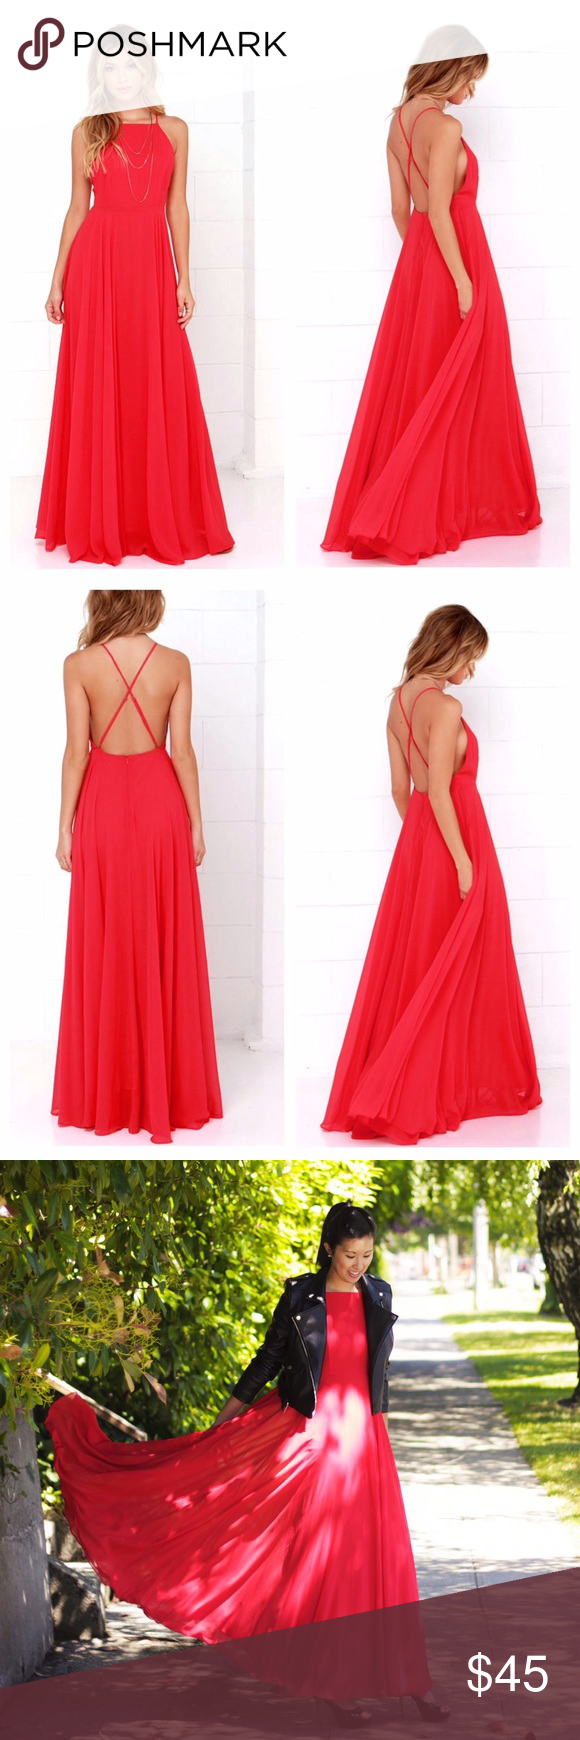 """Lulu's Mythical Kind of Love red maxi dress This gorgeous red maxi dress is the perfect show stopper for any event. It has only been worn once and laundered. The dress is fully lined with adjustable straps. Invisible zipper down the back. I'm 5'9"""" (6"""" in the last photo with heels on) and the dress is still long enough to cover my ankles. Size small. Lulu's Dresses Maxi"""